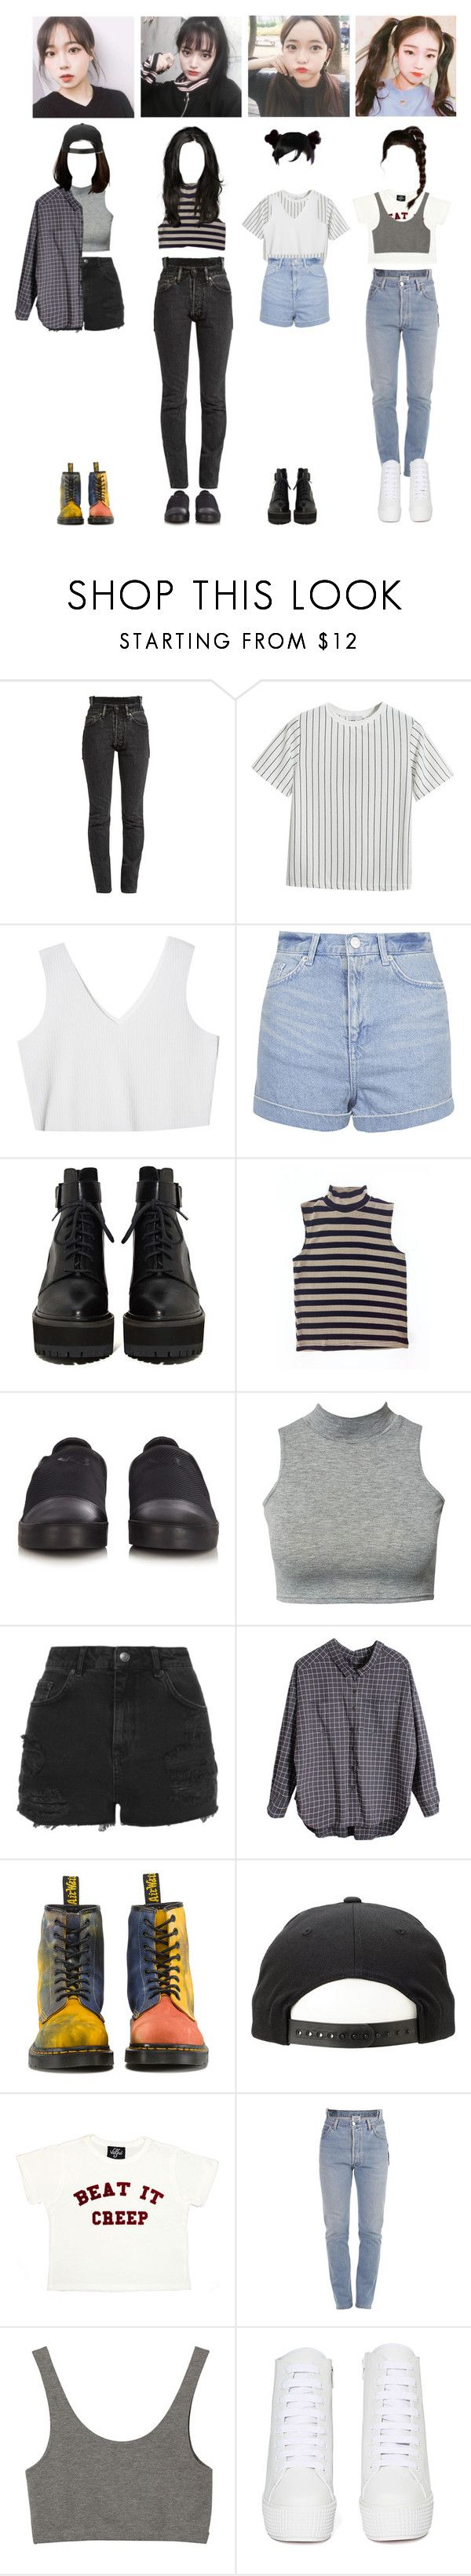 """""""Alpha:bet Girls : Highlight Maker Audition"""" by blackheart-redtears ❤ liked on Polyvore featuring Vetements, Chicnova Fashion, StyleNanda, Topshop, Y-3, Club L, Retrò, Dr. Martens, Valfré and Monki"""